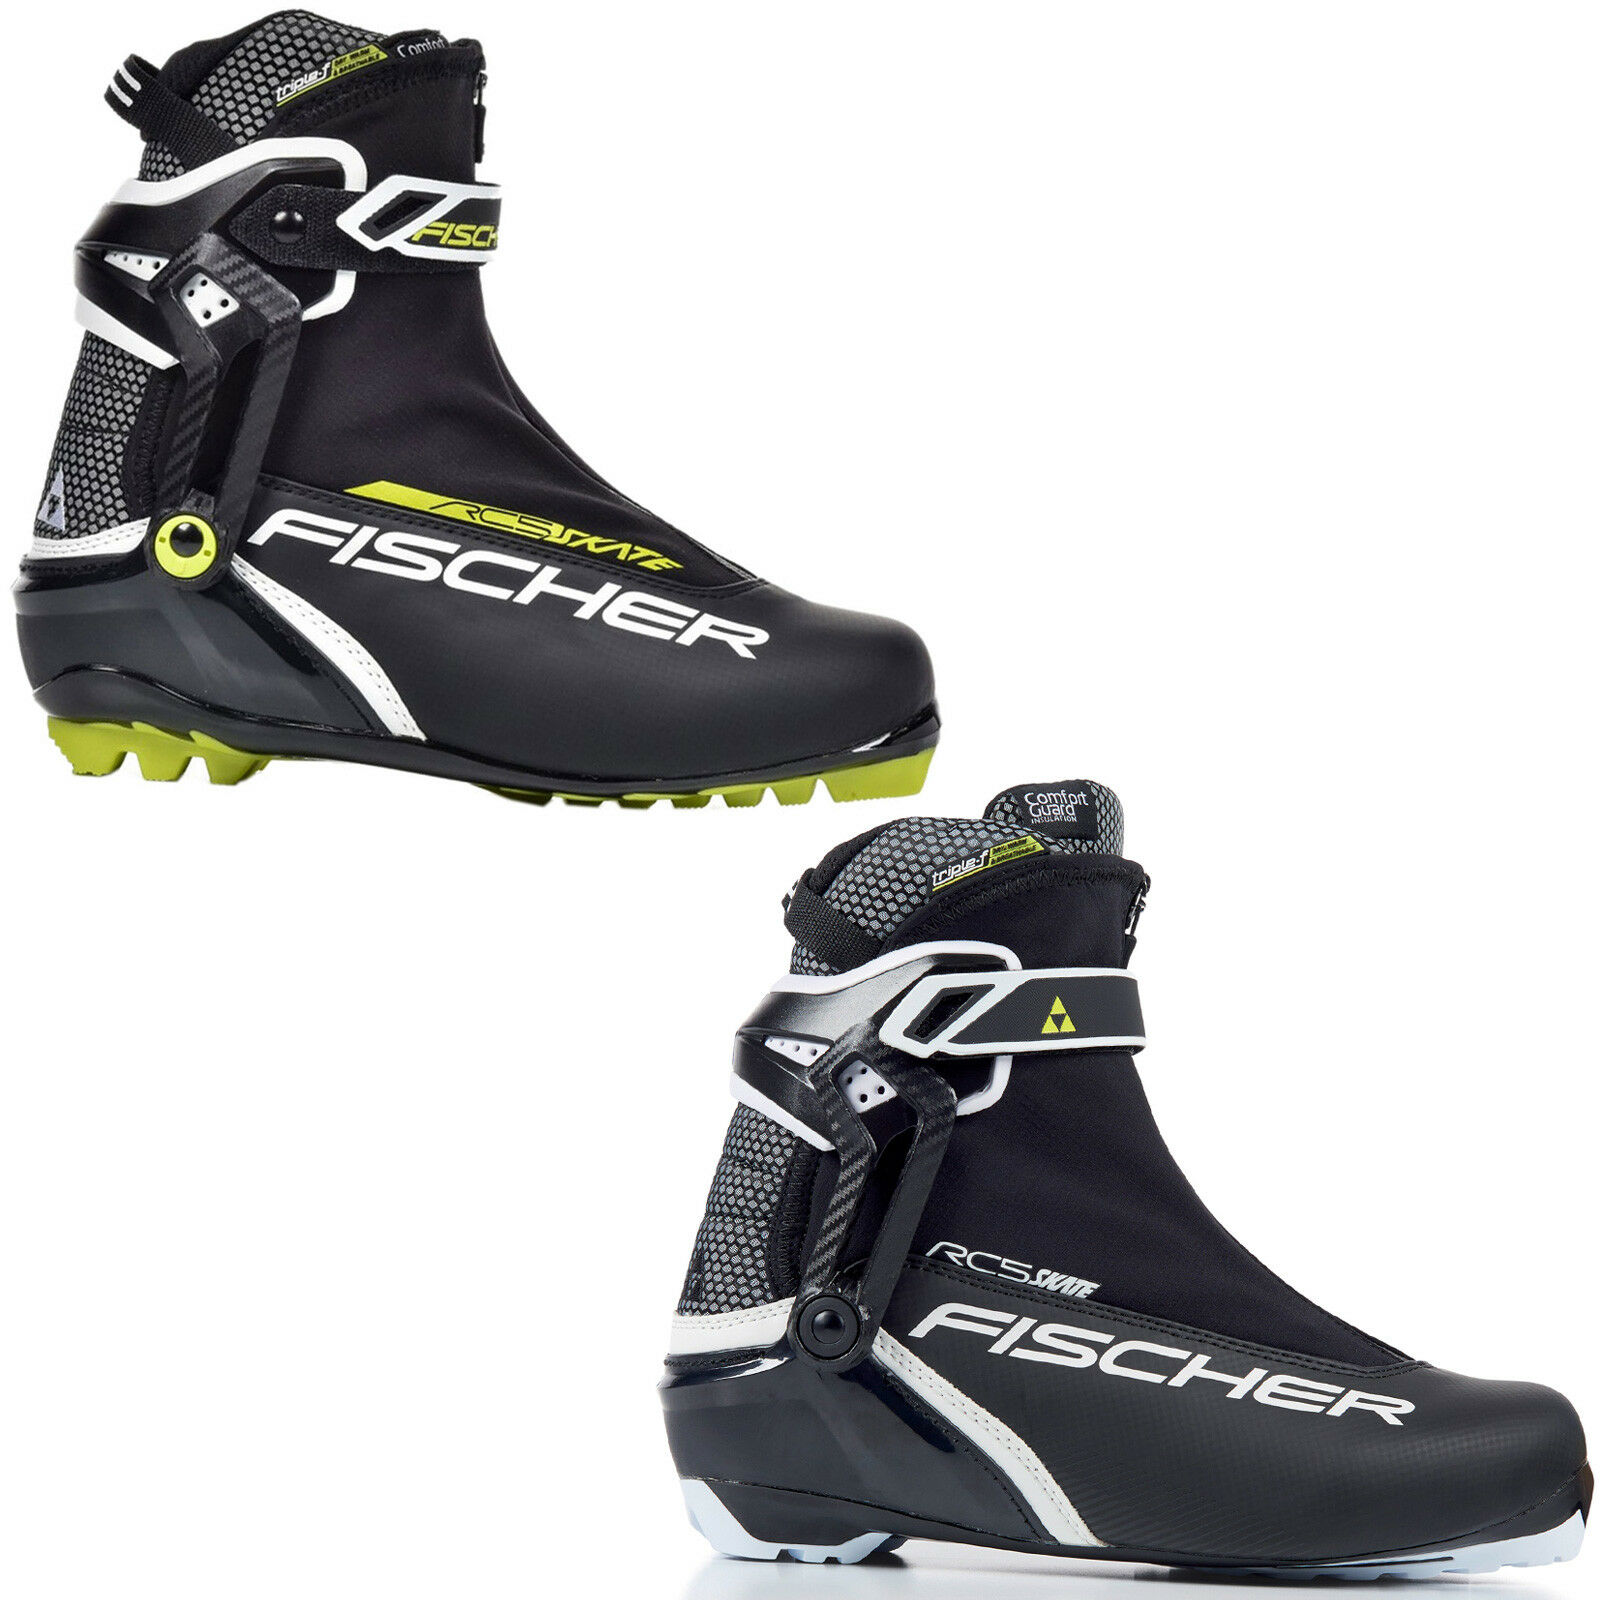 Fischer RC5 Skate Men s Cross Country Ski Boots NNN Shoes Skating New Top  фото 09b4ae65800